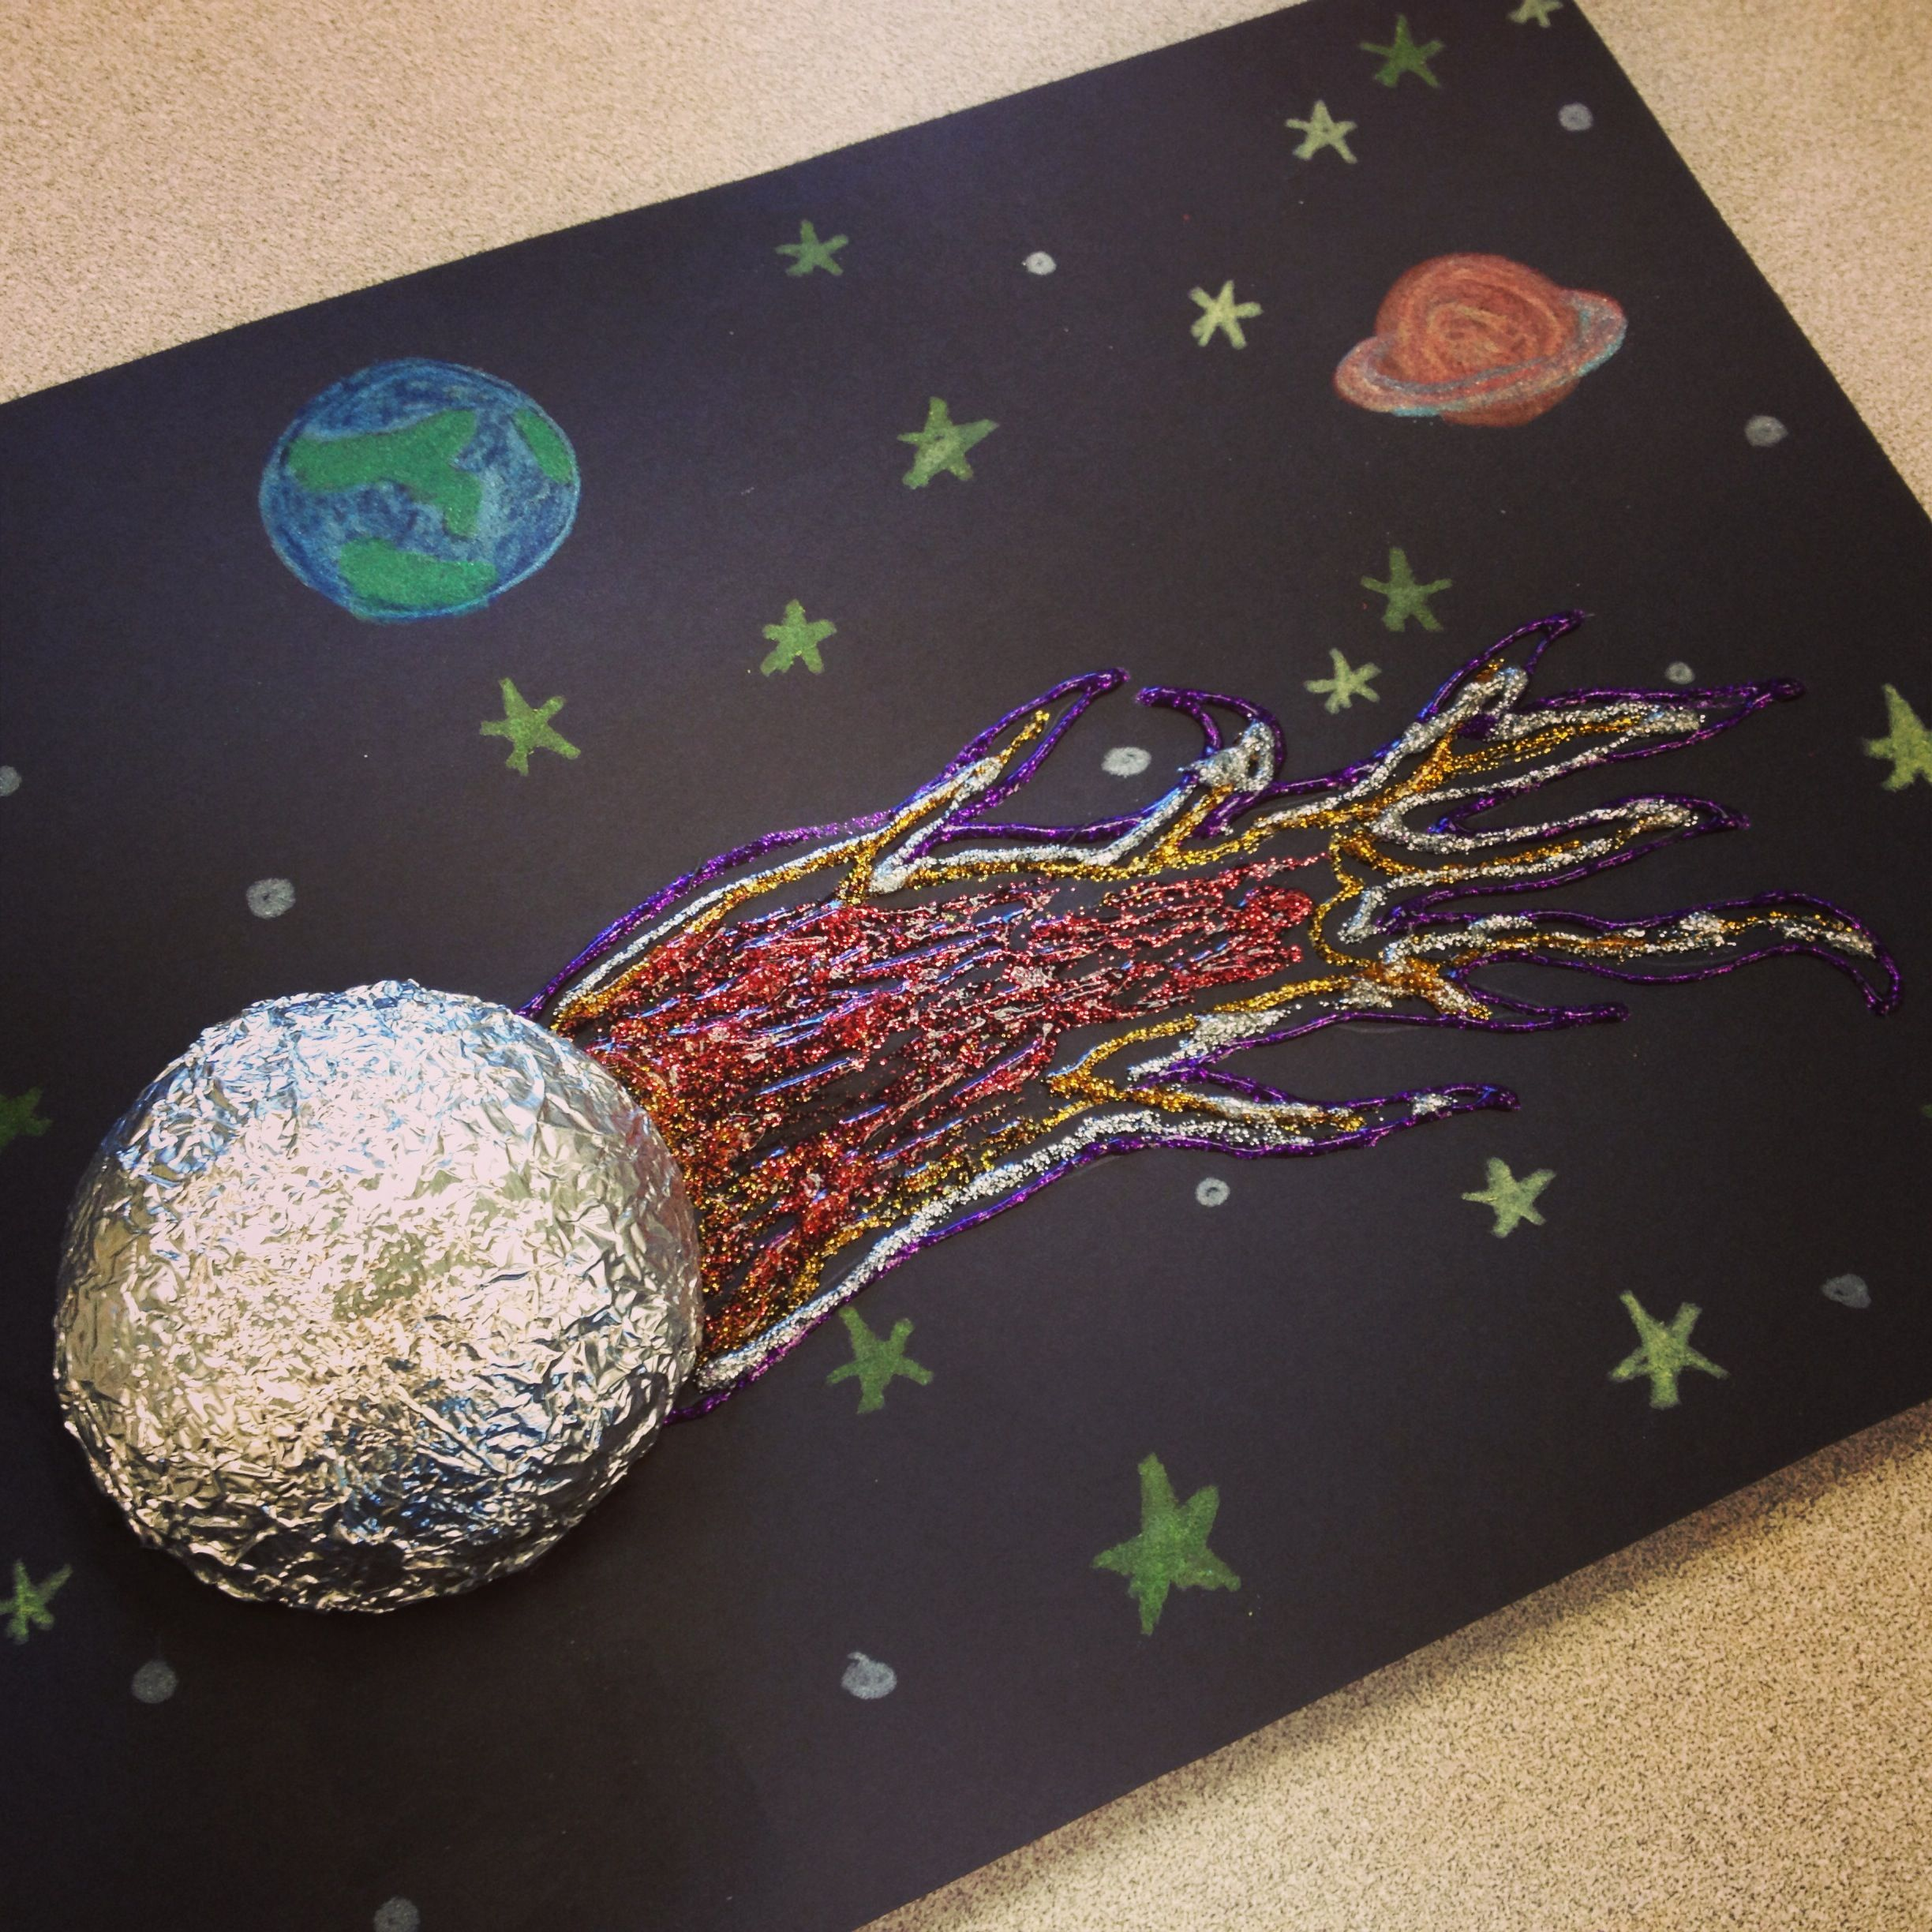 Comet Craft First Have Kids Use Black Construction Paper With Crayons And Draw Planets And